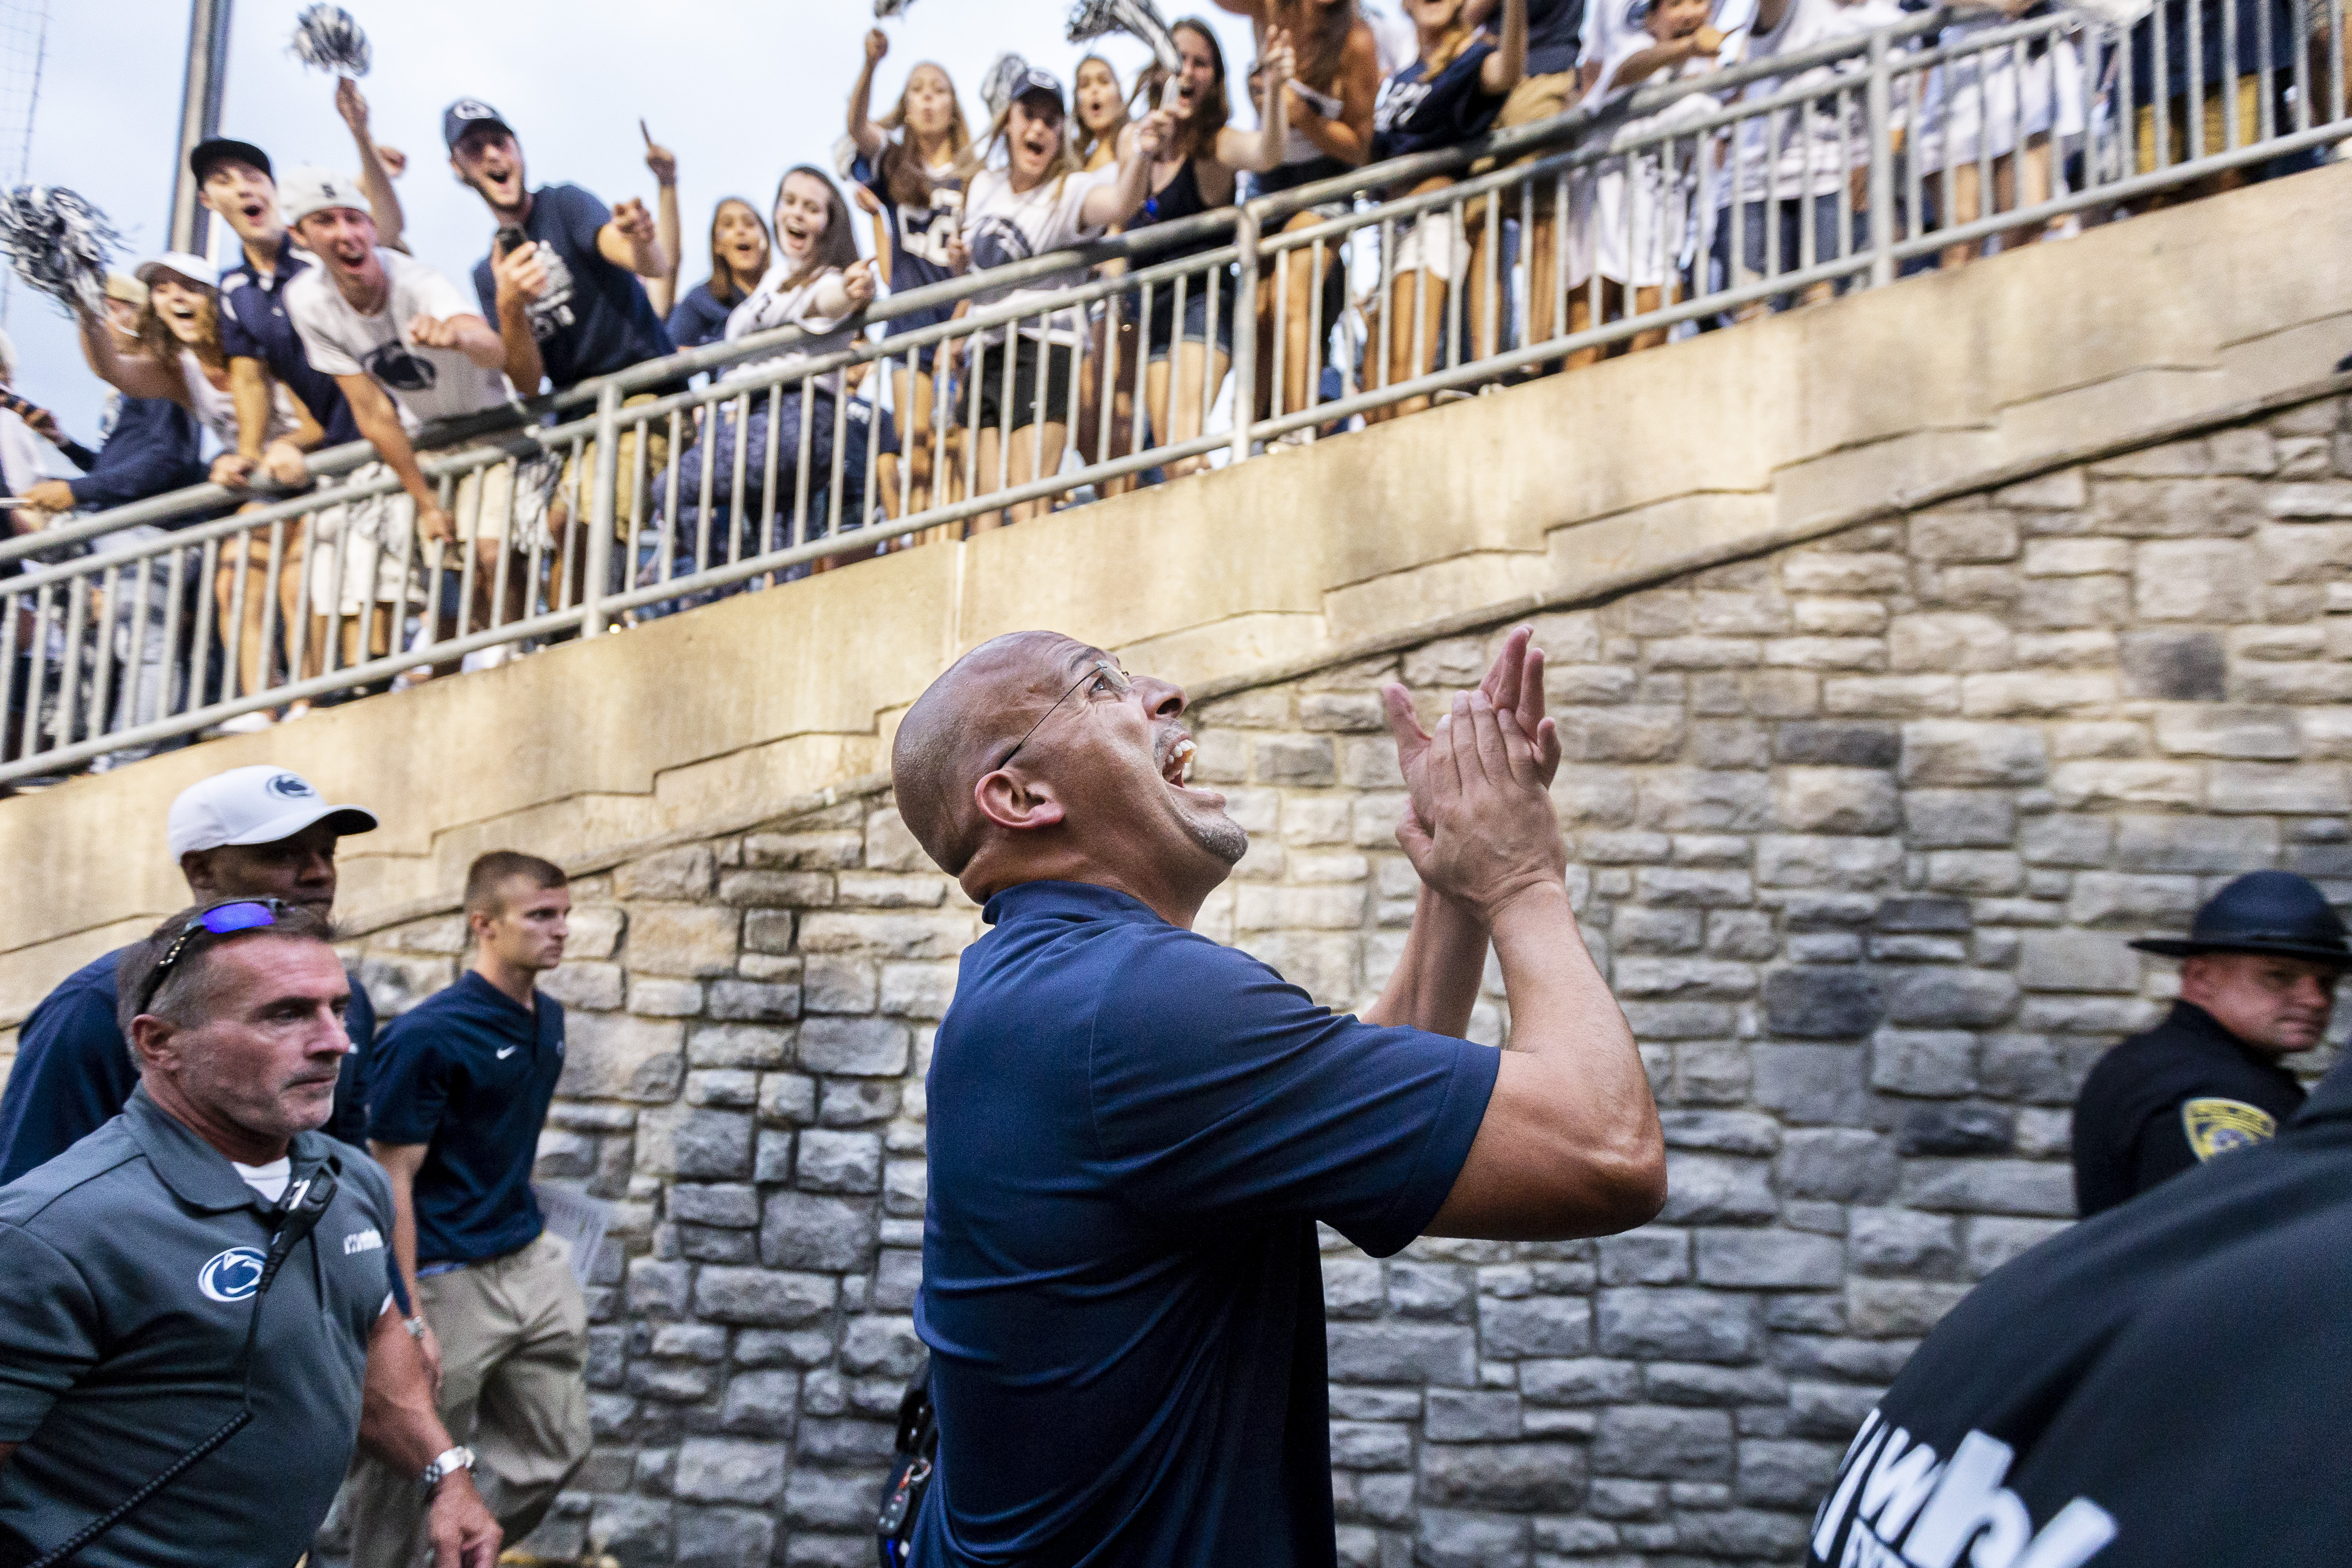 Penn State's 2019 schedule: An early look at the Nittany Lions' first two matchups